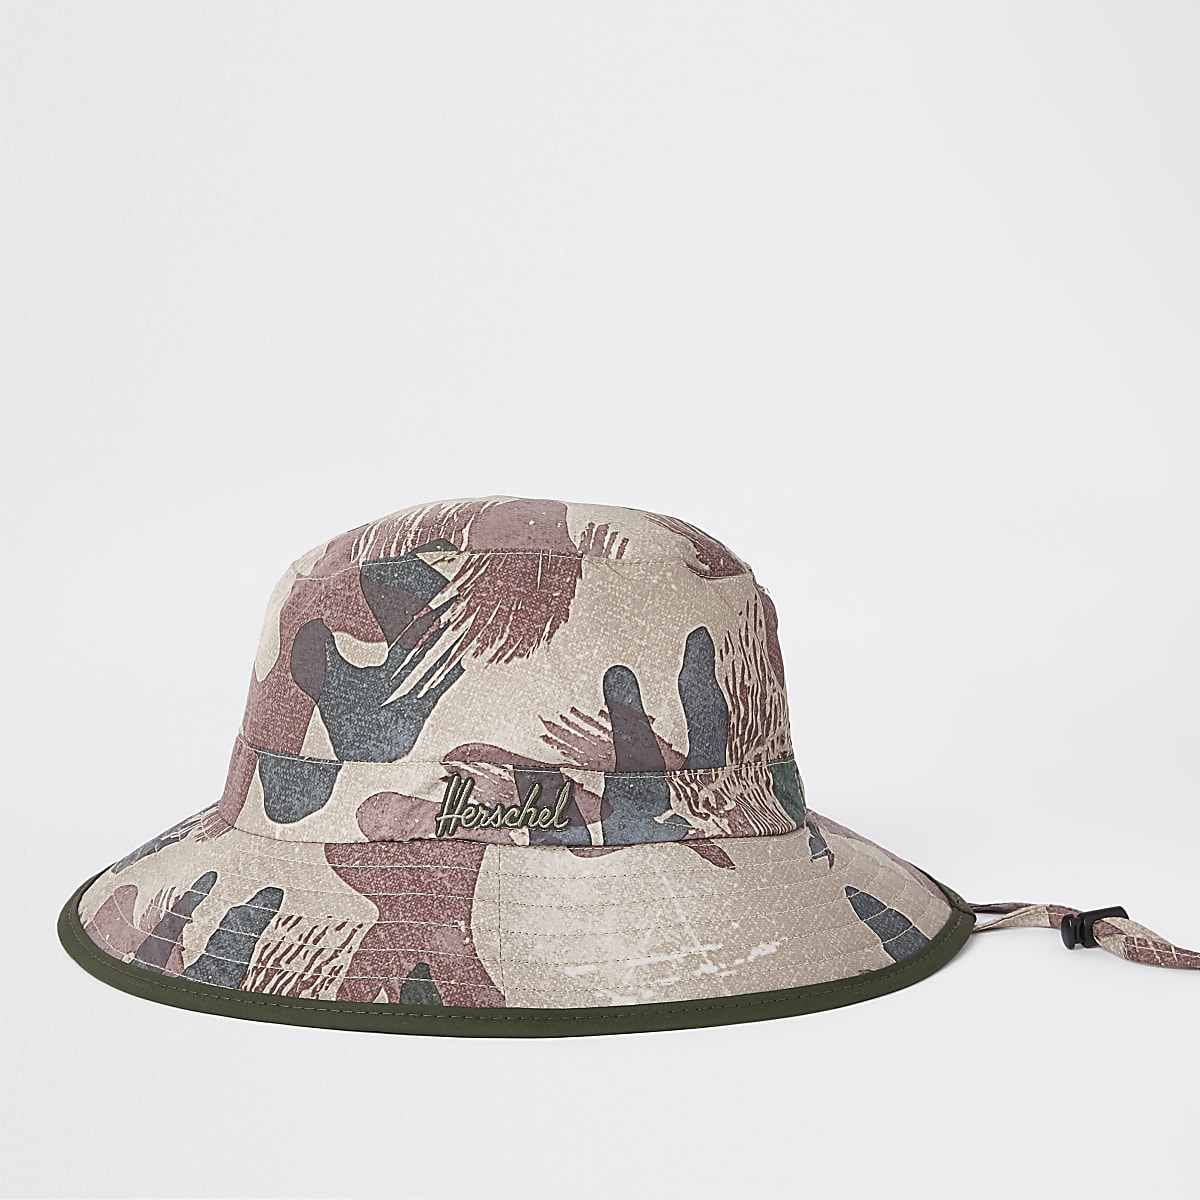 ab6ba462 Herschel green Creek camo bucket hat - Hats / Caps - Accessories - men